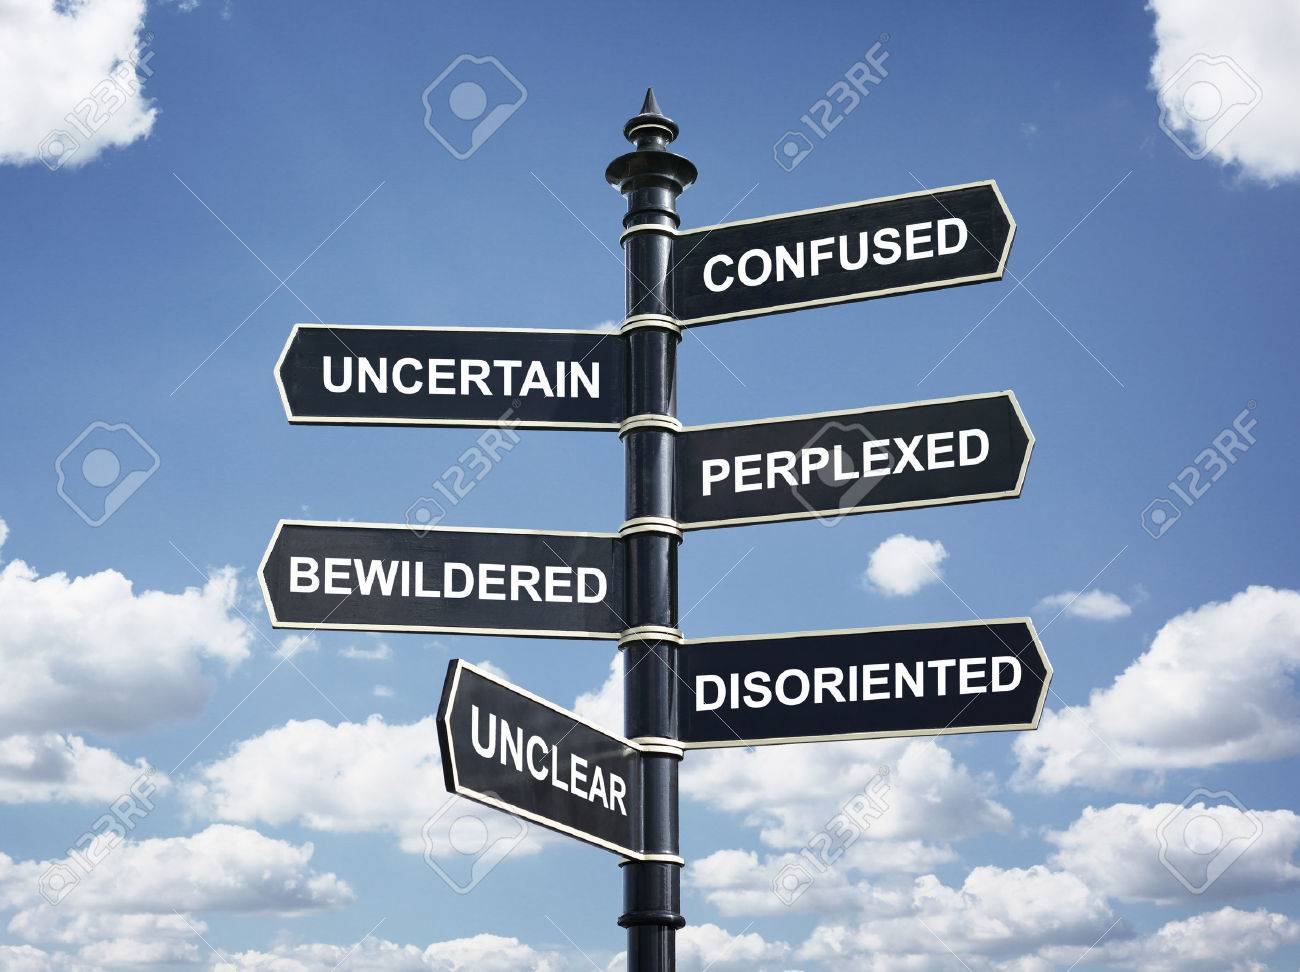 Crossroad signpost saying confused, uncertain, perplexed, bewildered, disoriented, unclear concept for lost, confusion or decisions - 54428169